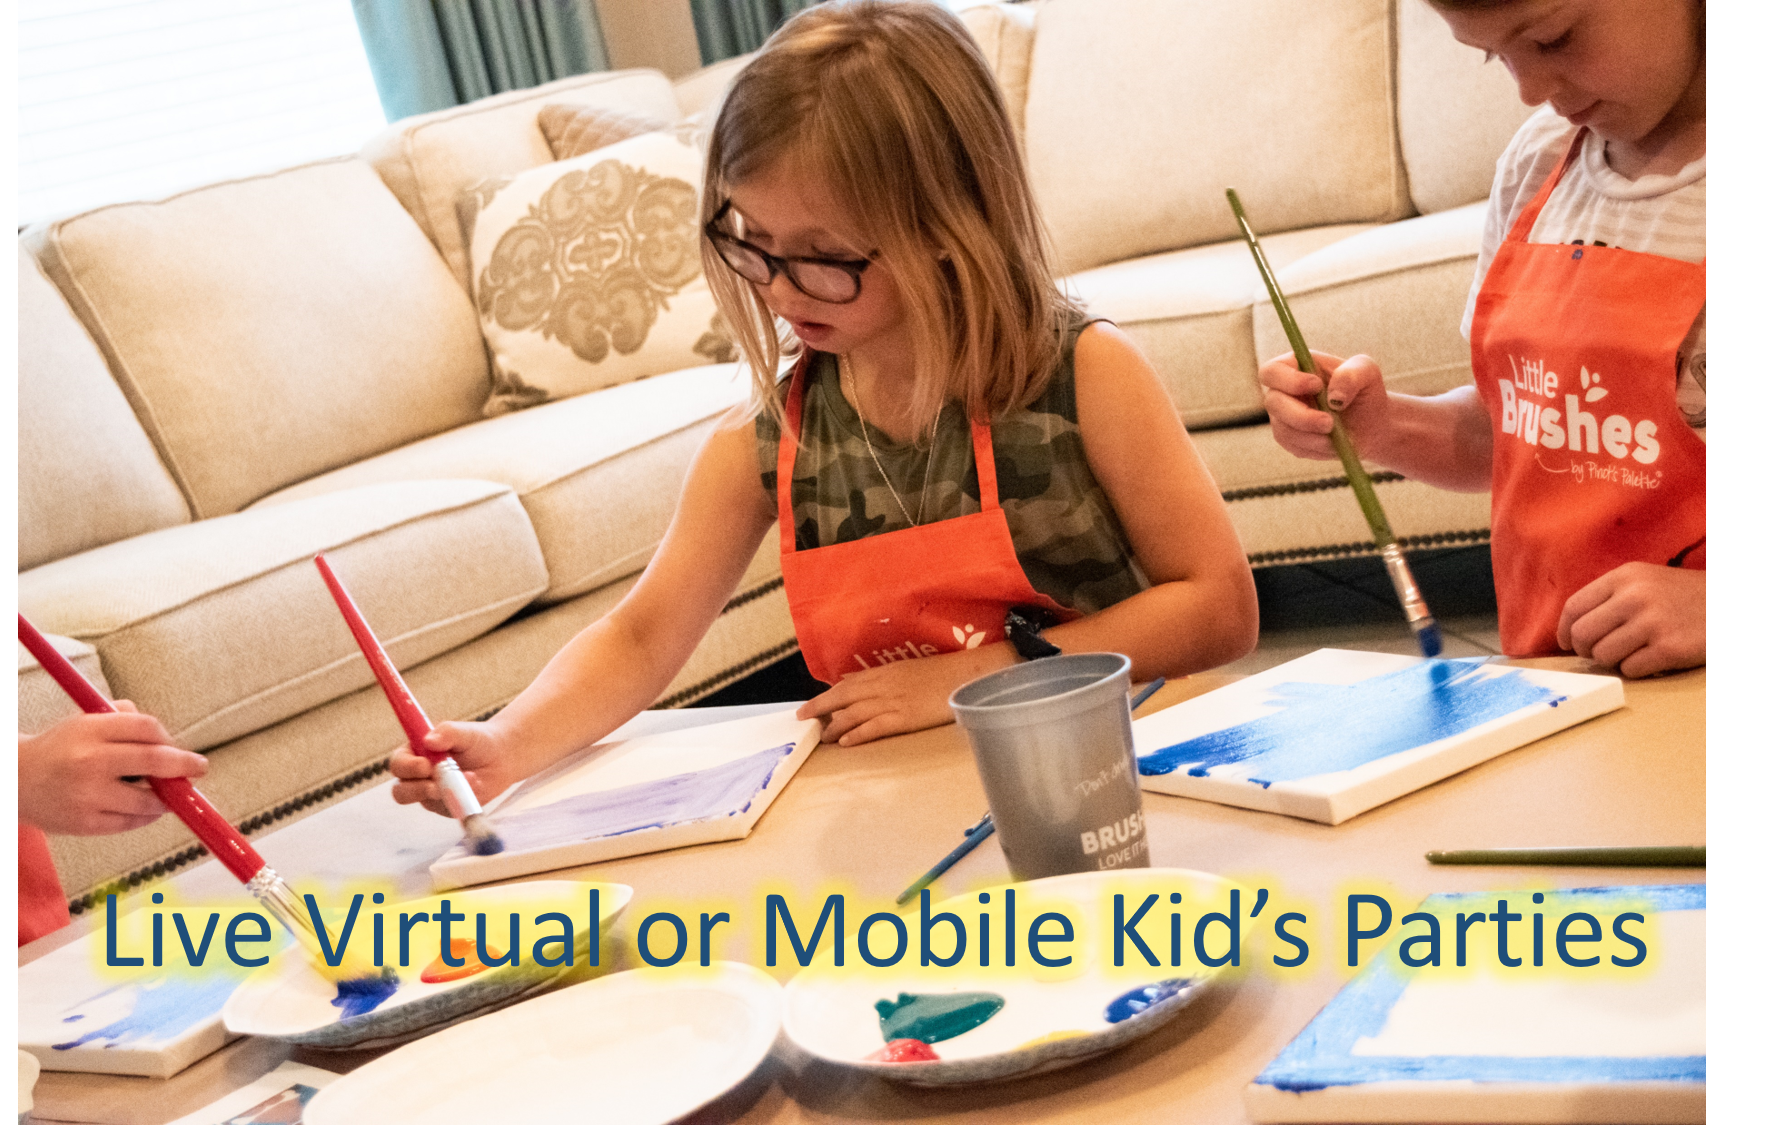 Live Virtual or Mobile Kids Parties